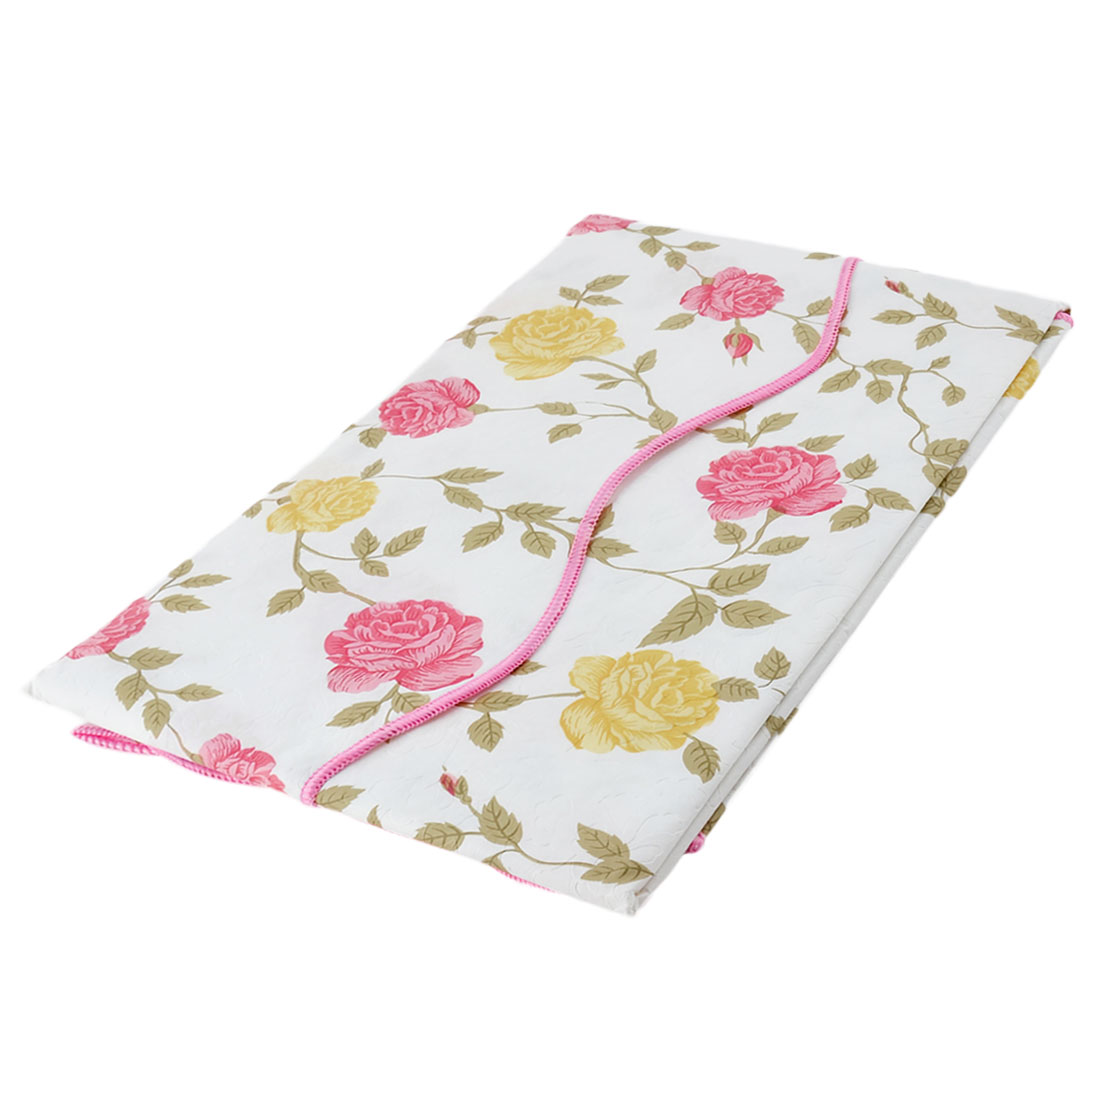 UXCELL Home Picnic Bi Color Rose Pattern Water Resistant Oil Proof  Tablecloth Table Cloth Cover 72 X 54 Inch